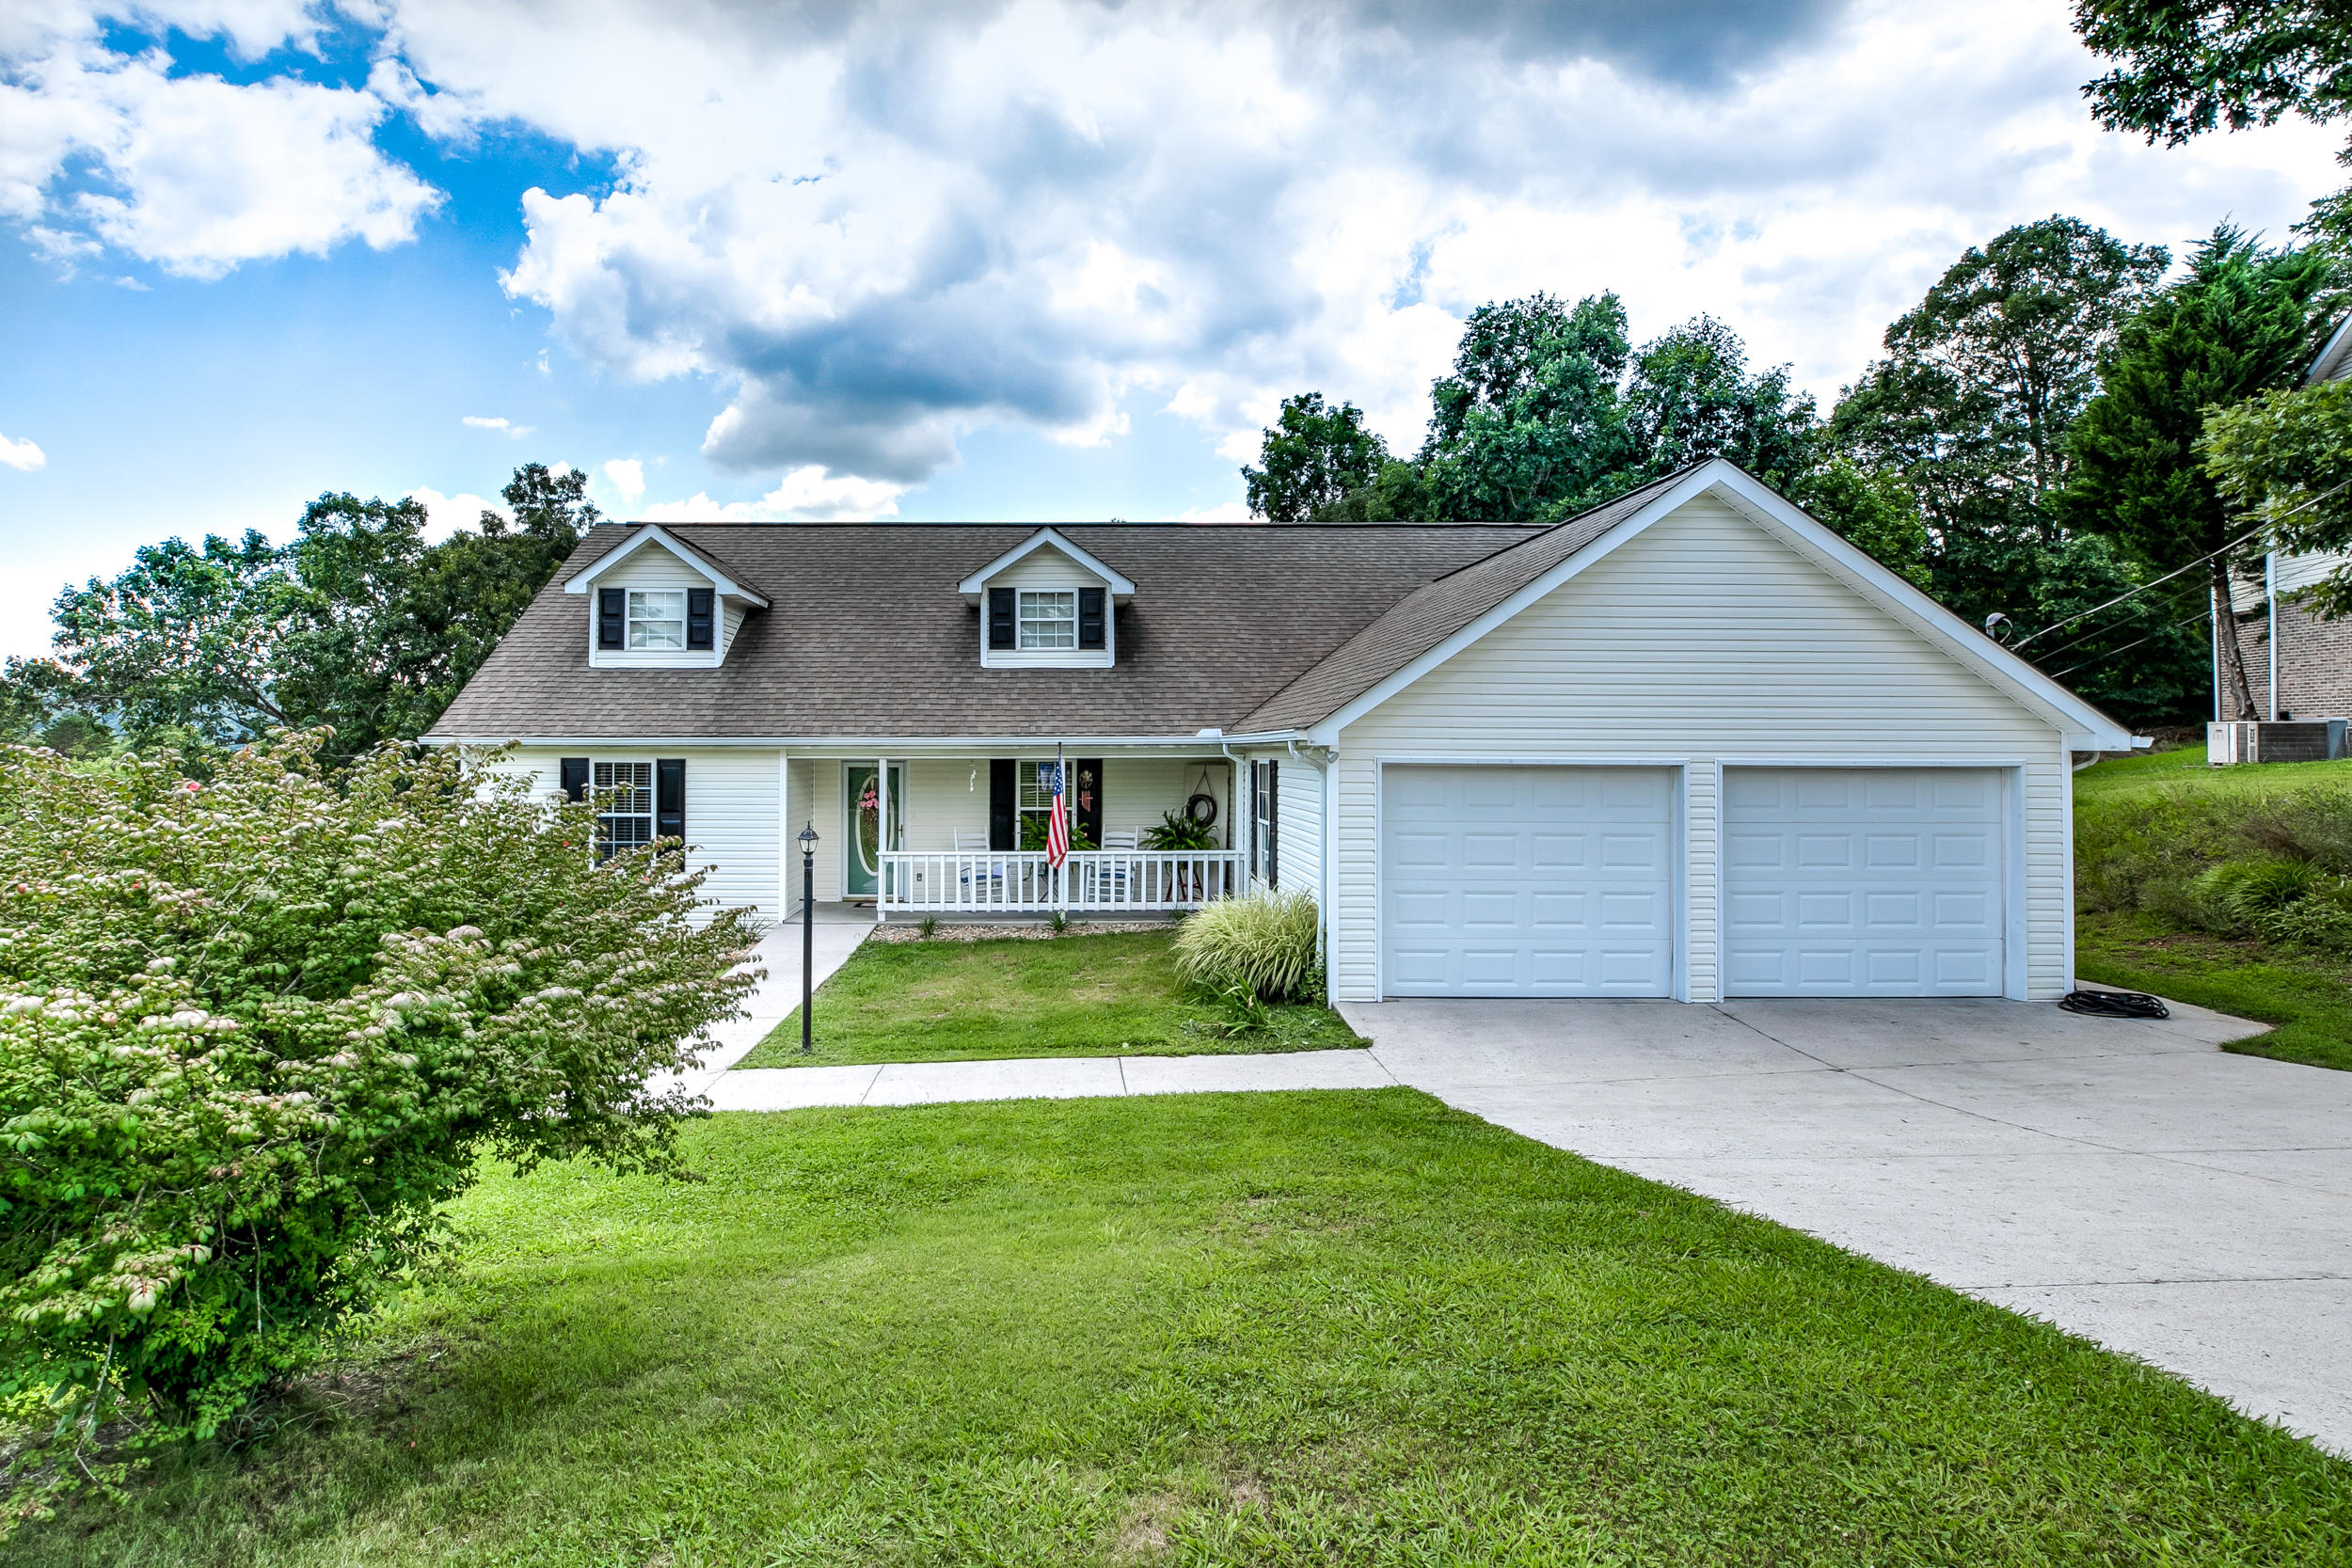 20190724120621349369000000-o Rocky Top anderson county homes for sale